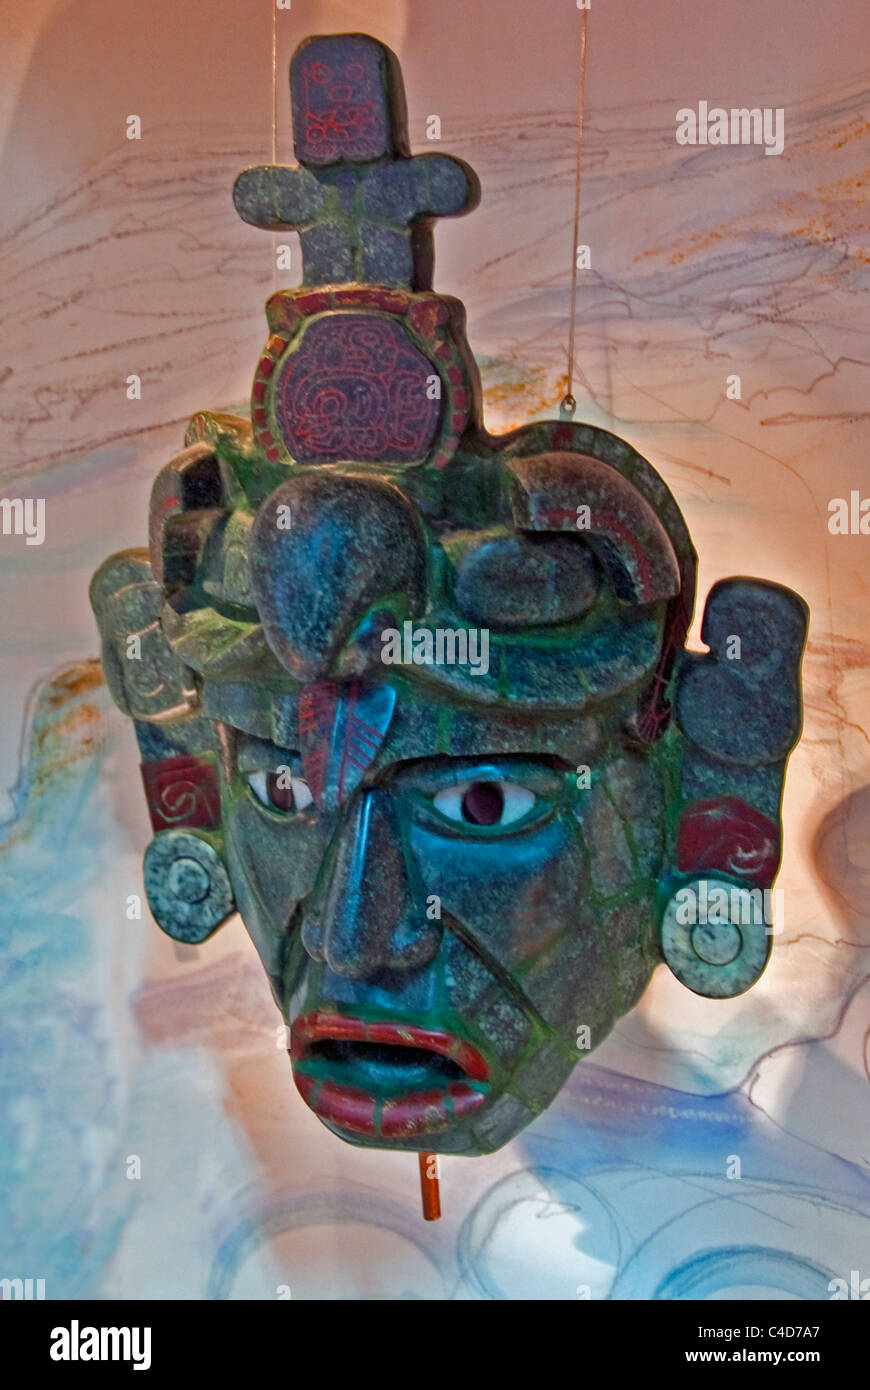 Replica of Mayan jade mask from Tikal tomb, found in 174 pieces, on display at La Casa del Jade (Jade Museum) in - Stock Image